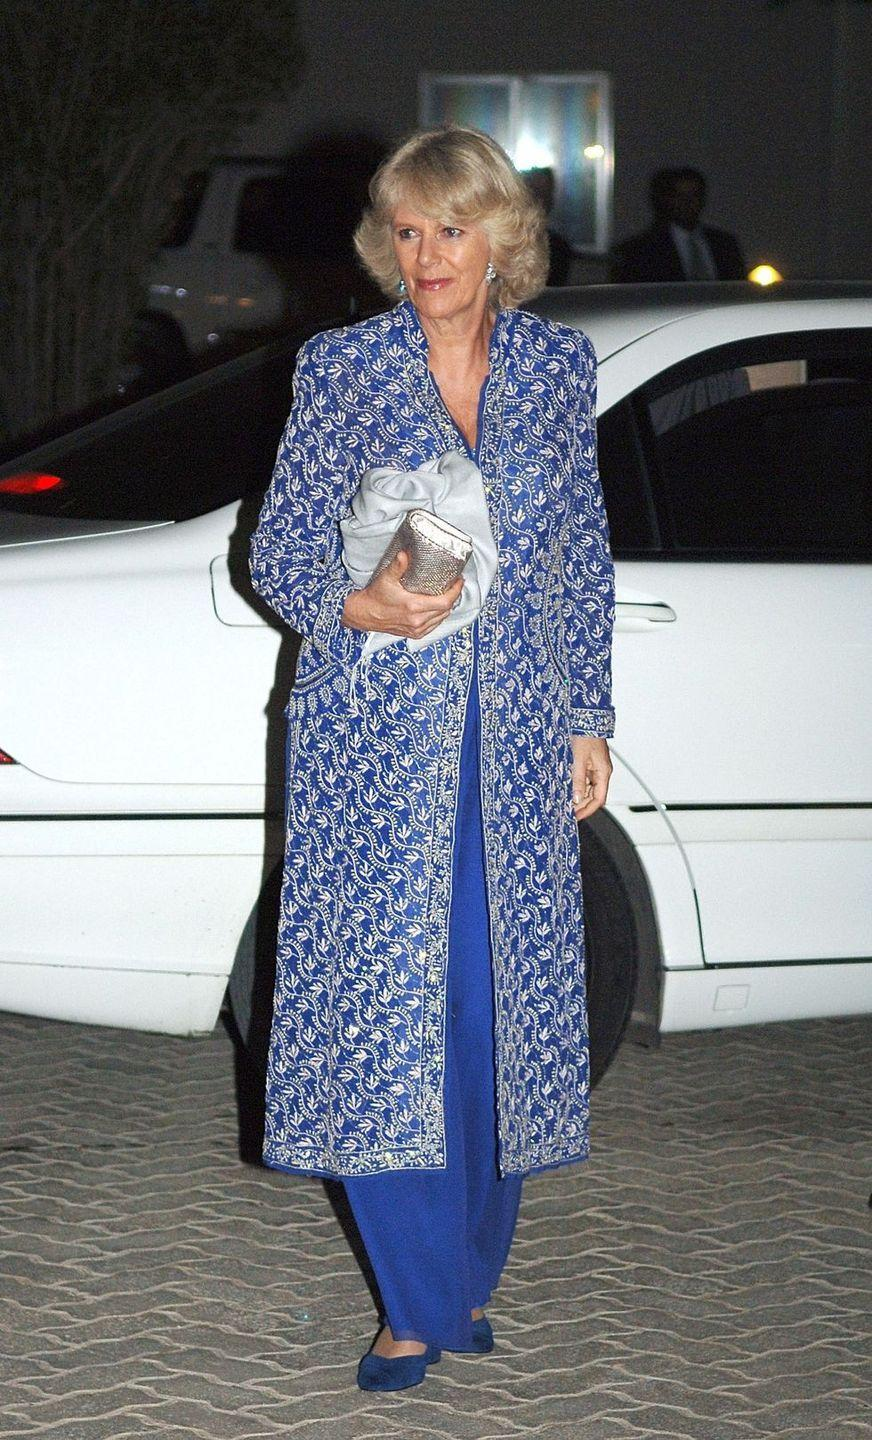 <p>On a visit to Kuwait, Camilla attended a dinner with Prince Charles wearing this embroidered and beaded royal blue coatdress with matching trousers and sapphire earrings. </p>